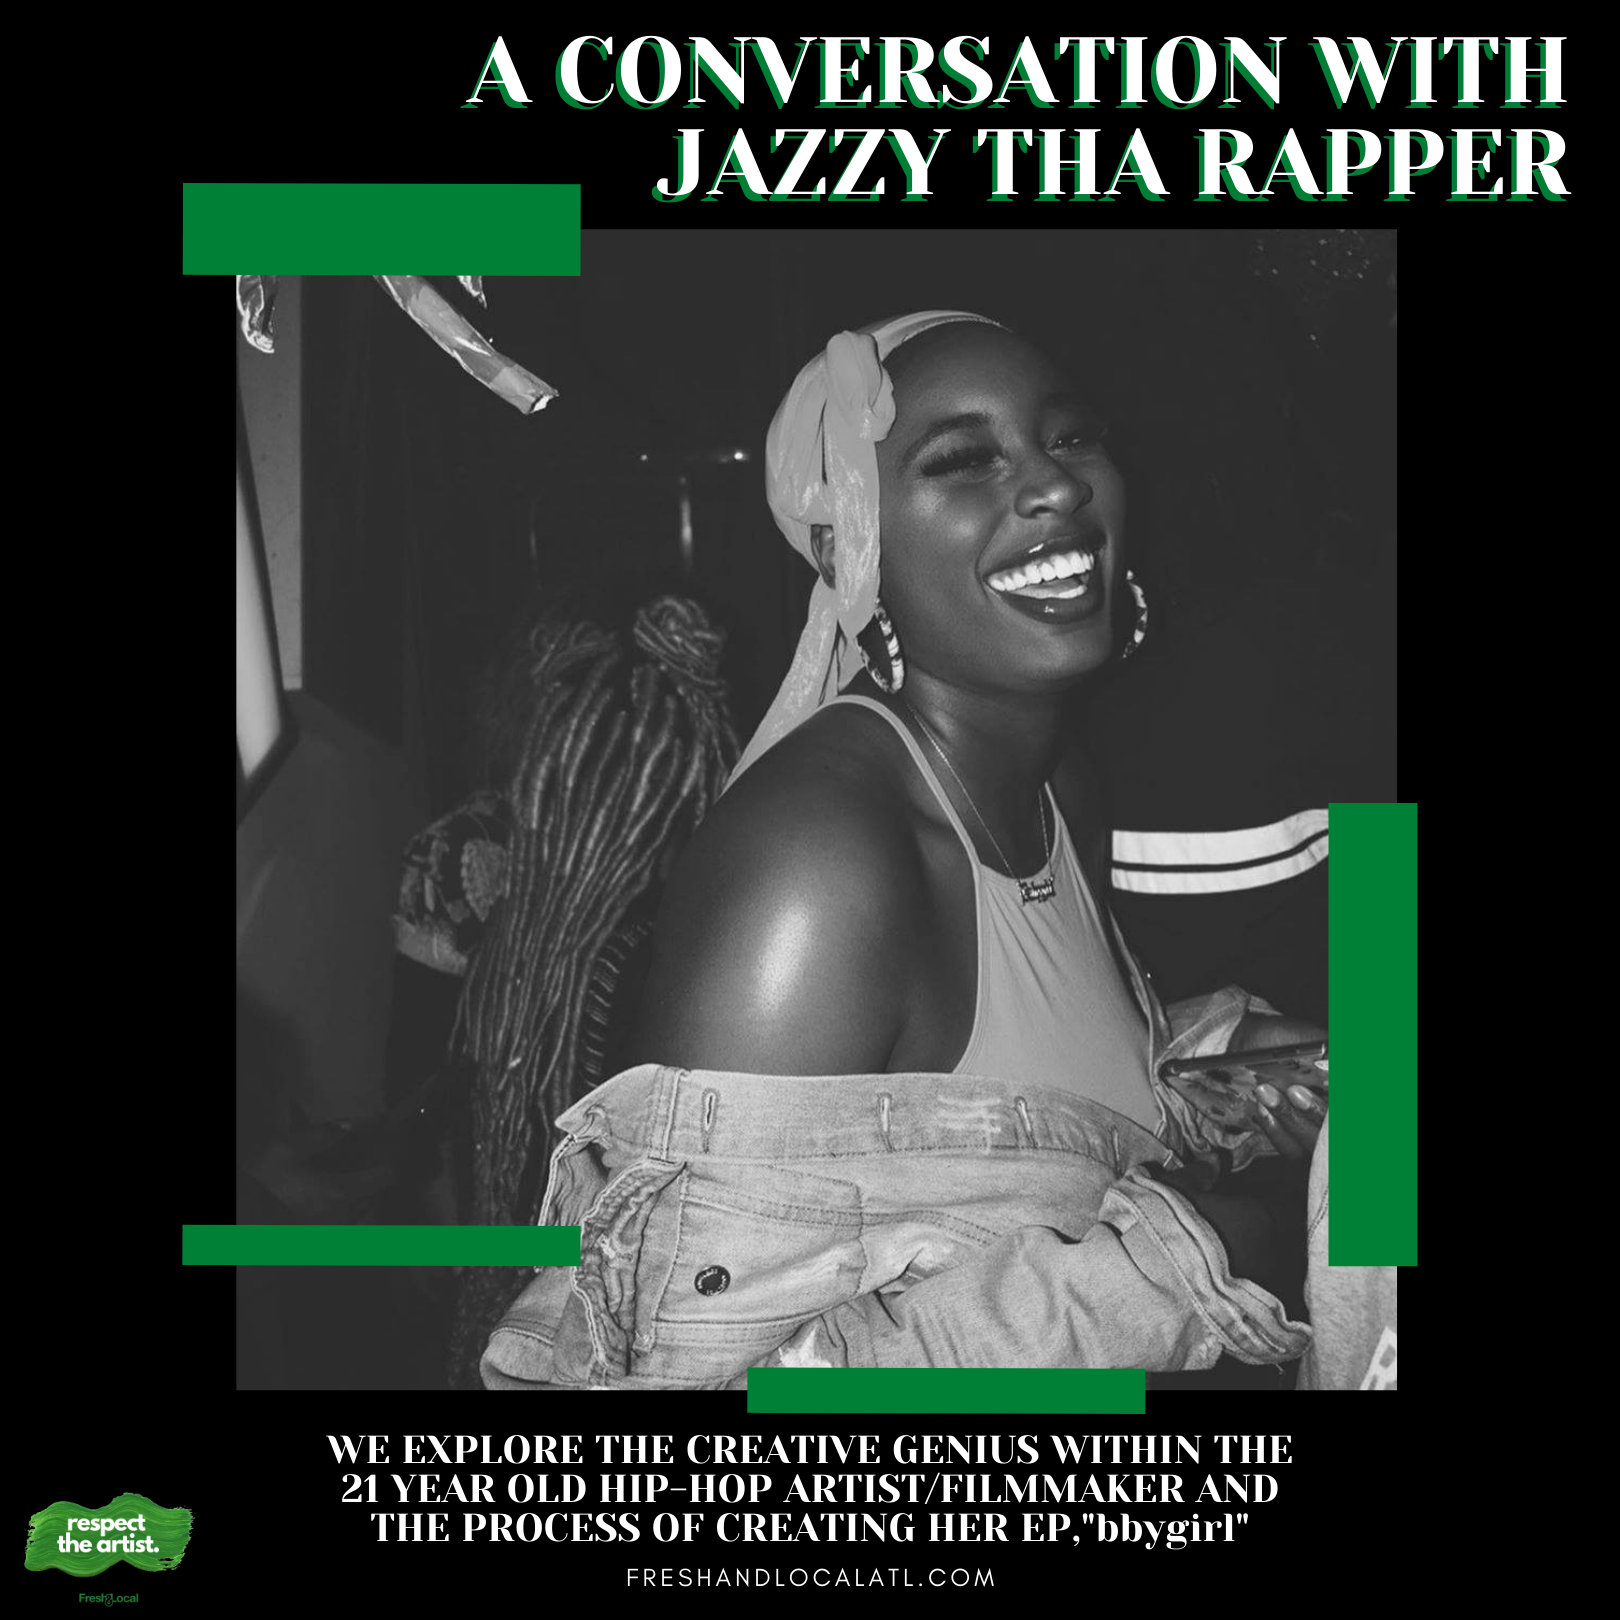 A Conversation with Jazzy Tha Rapper